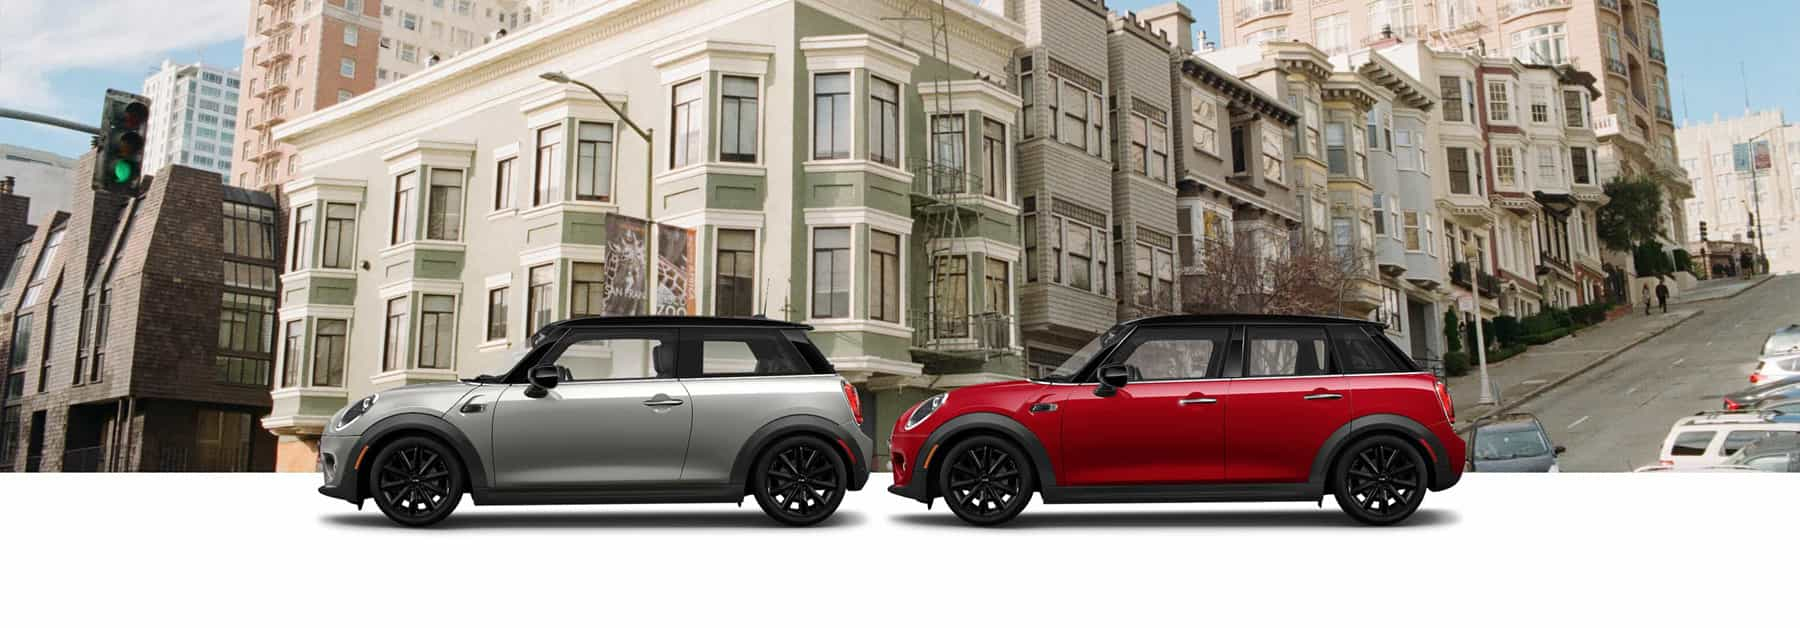 MINI Oxford Edition Mini Cooper Hardtop 2 Door and Oxford Edition MINI Cooper Hardtop 4 Door in front of residential area of a city